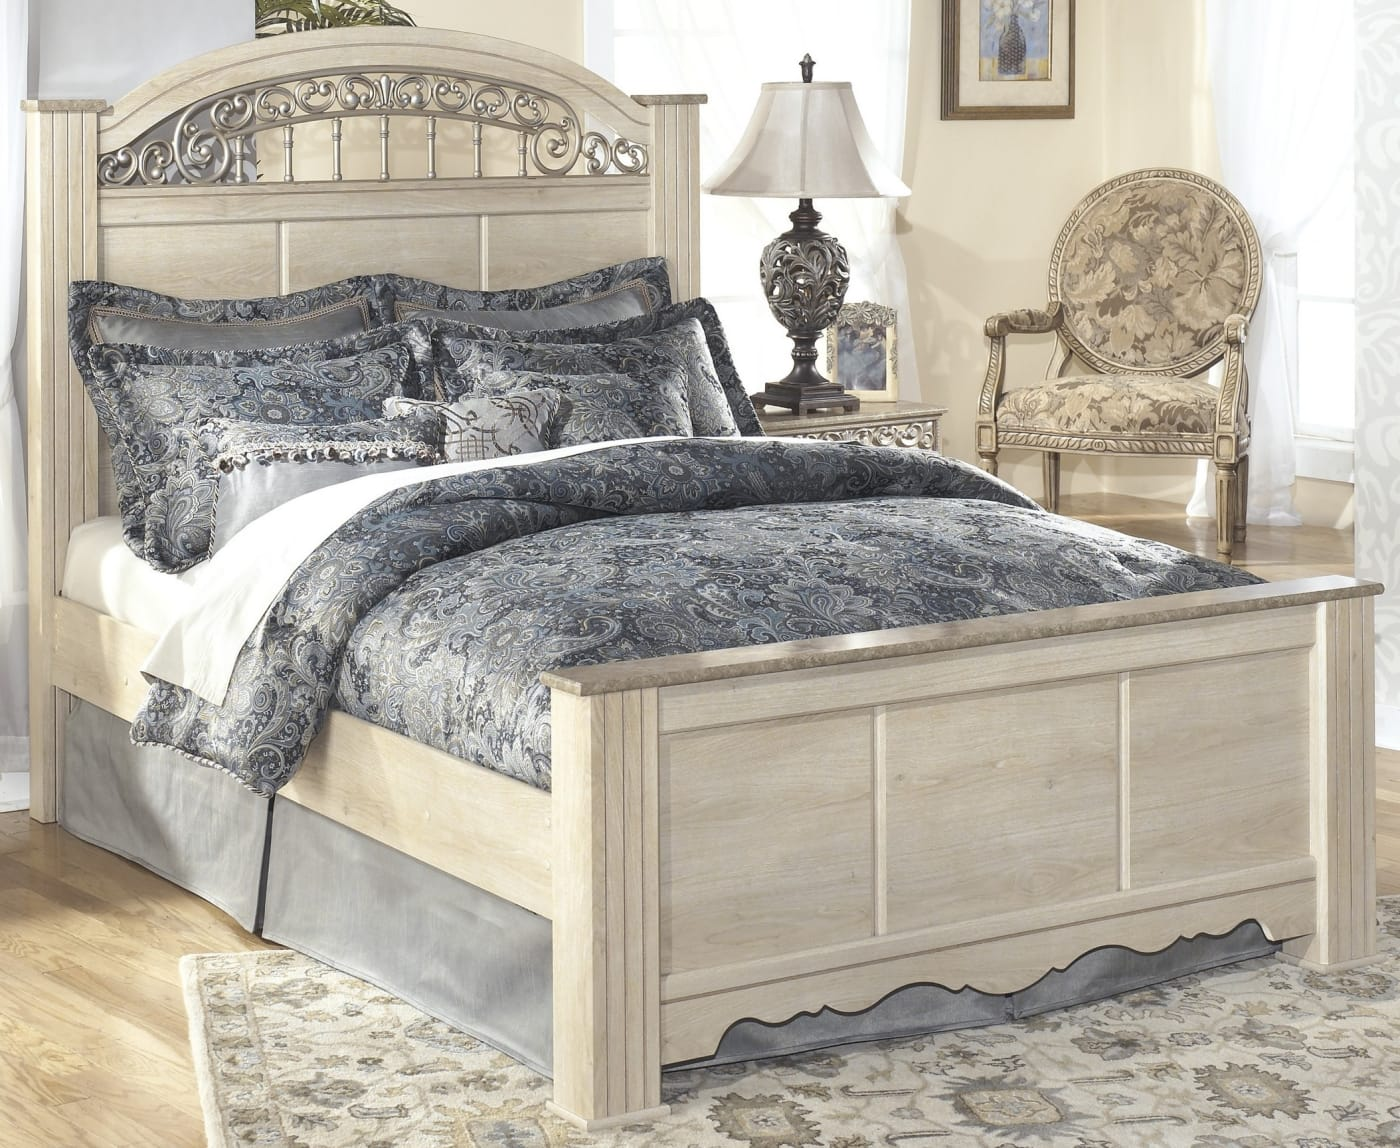 Signature Design By Ashley Catalina Antique White King 5 Piece Bedroom Set Reviews